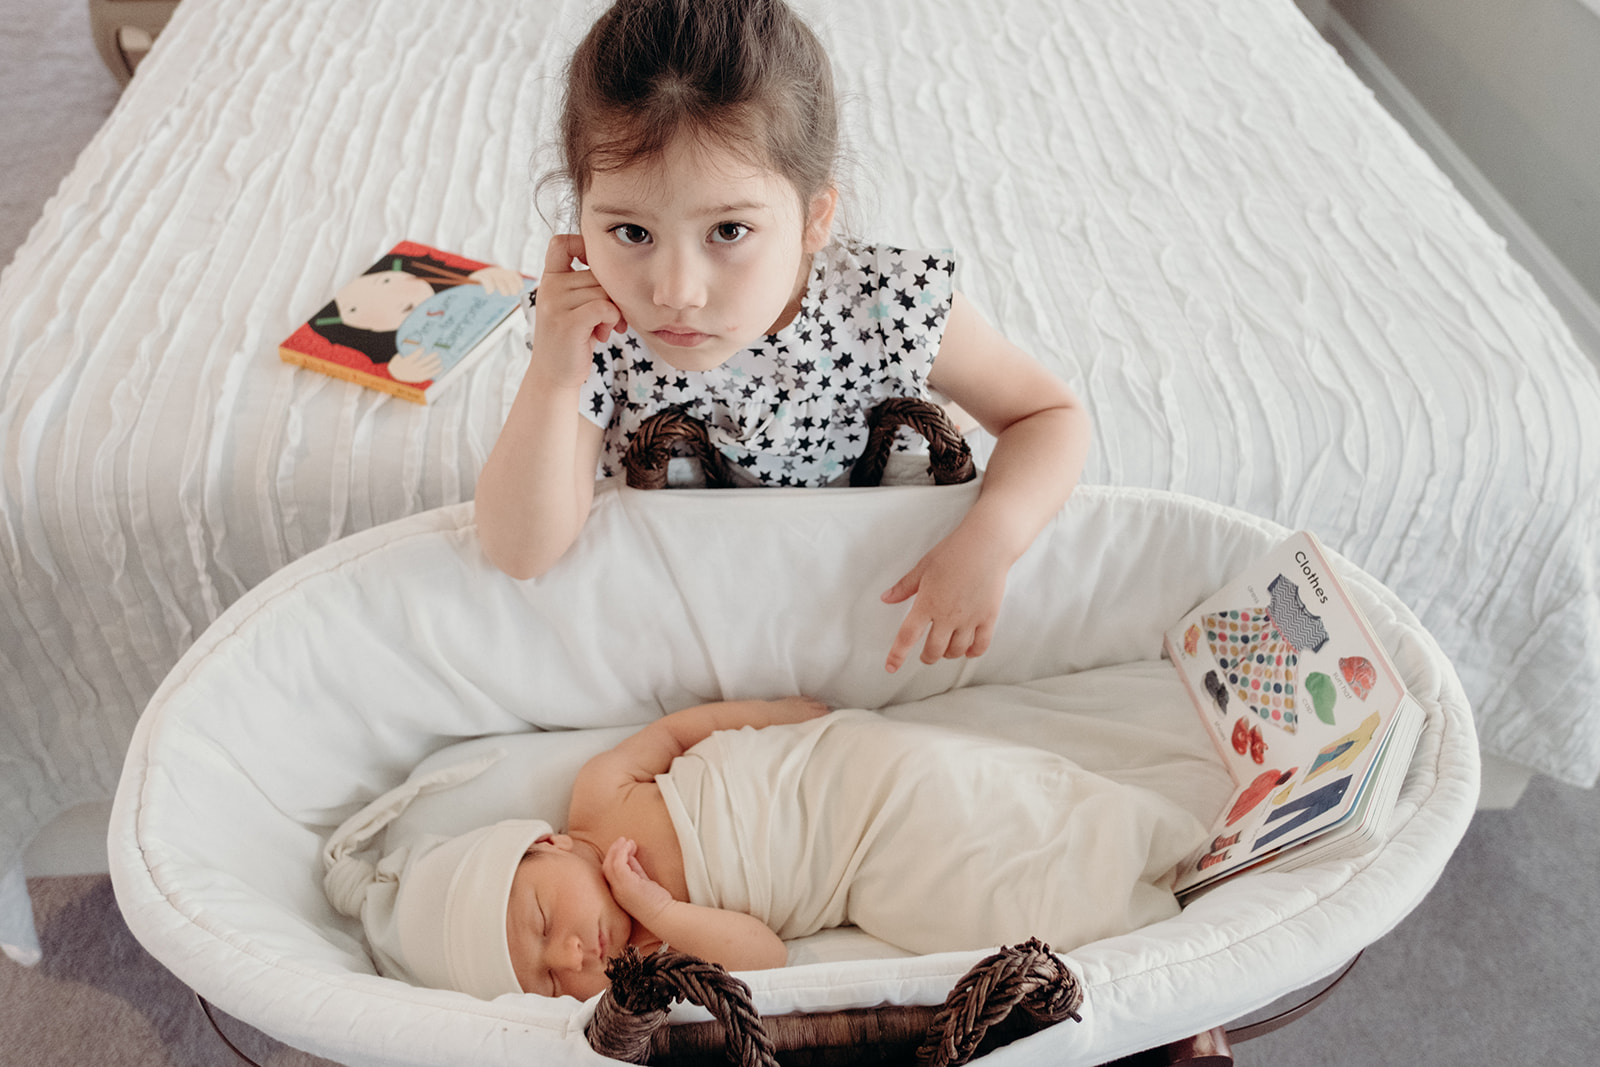 A little girl sits next to her baby brother in his bassinet during an in-home family photography session.